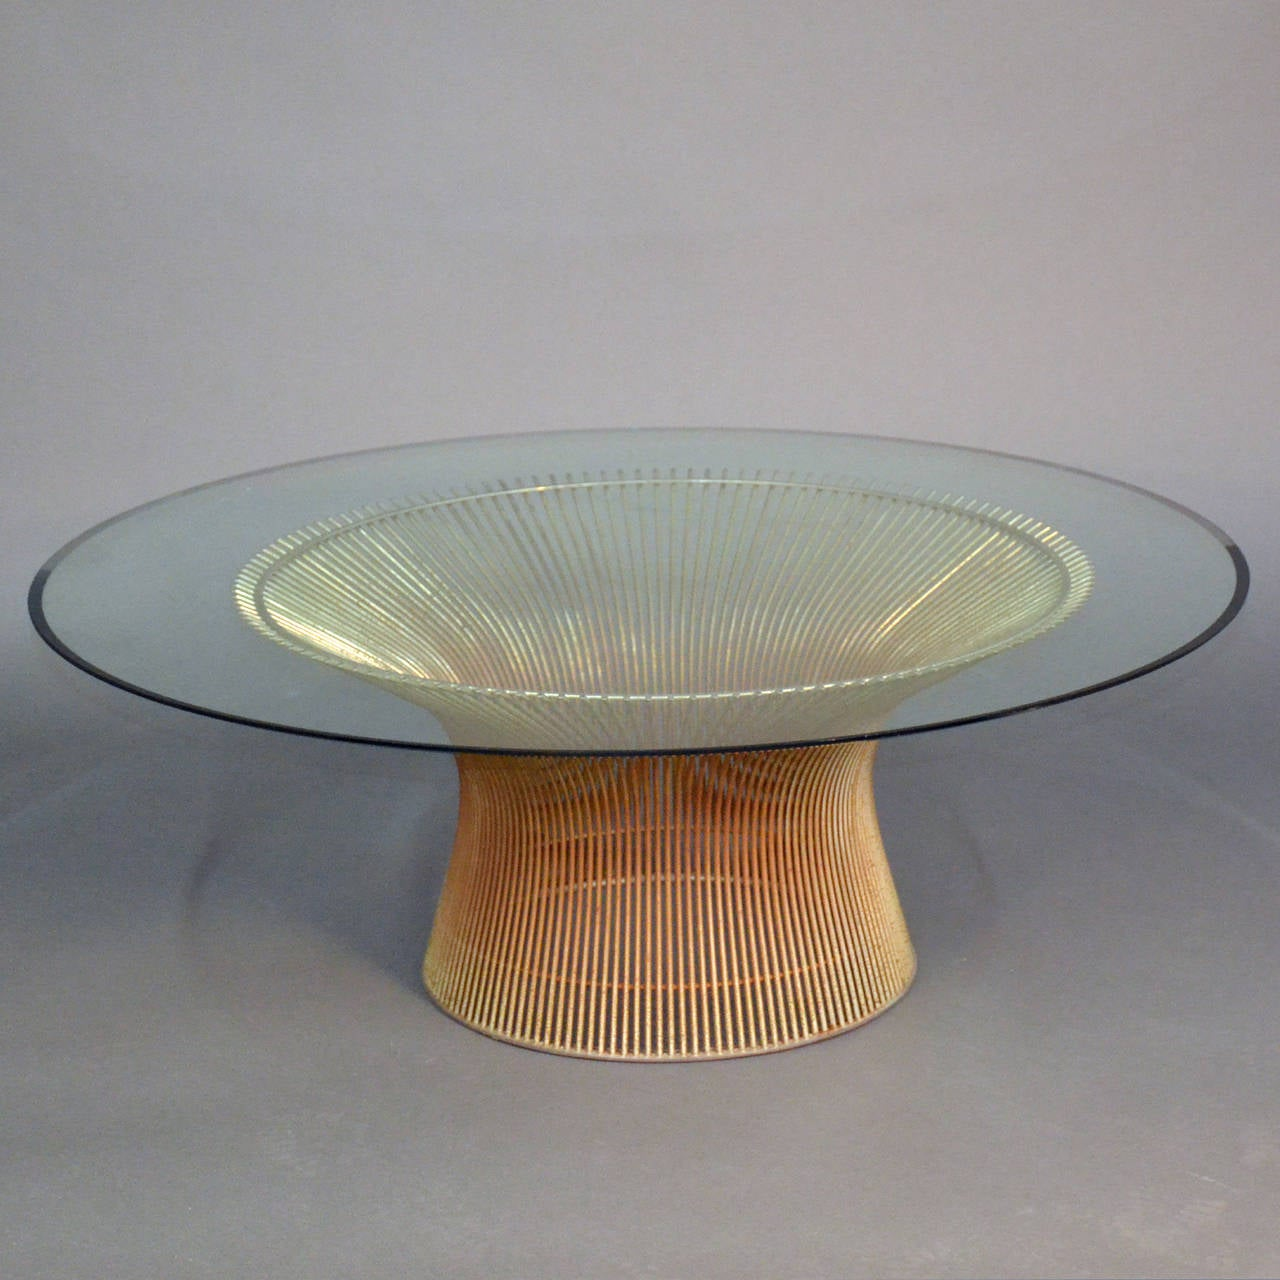 Warren platner coffee table with glass top at 1stdibs for Table warren platner